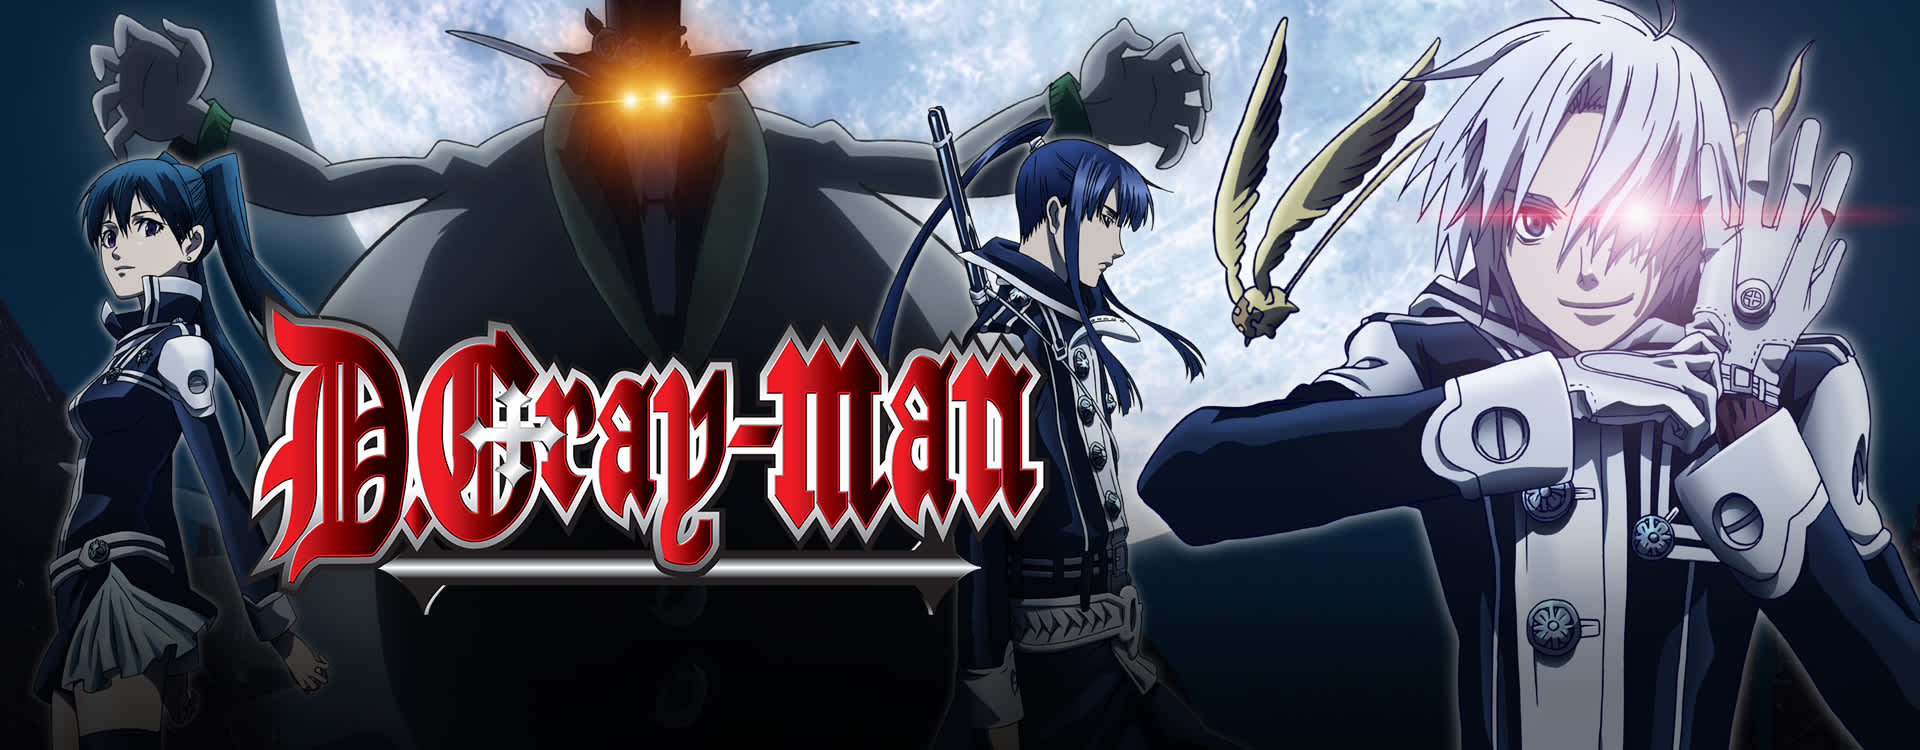 D Grey Man Serien Stream